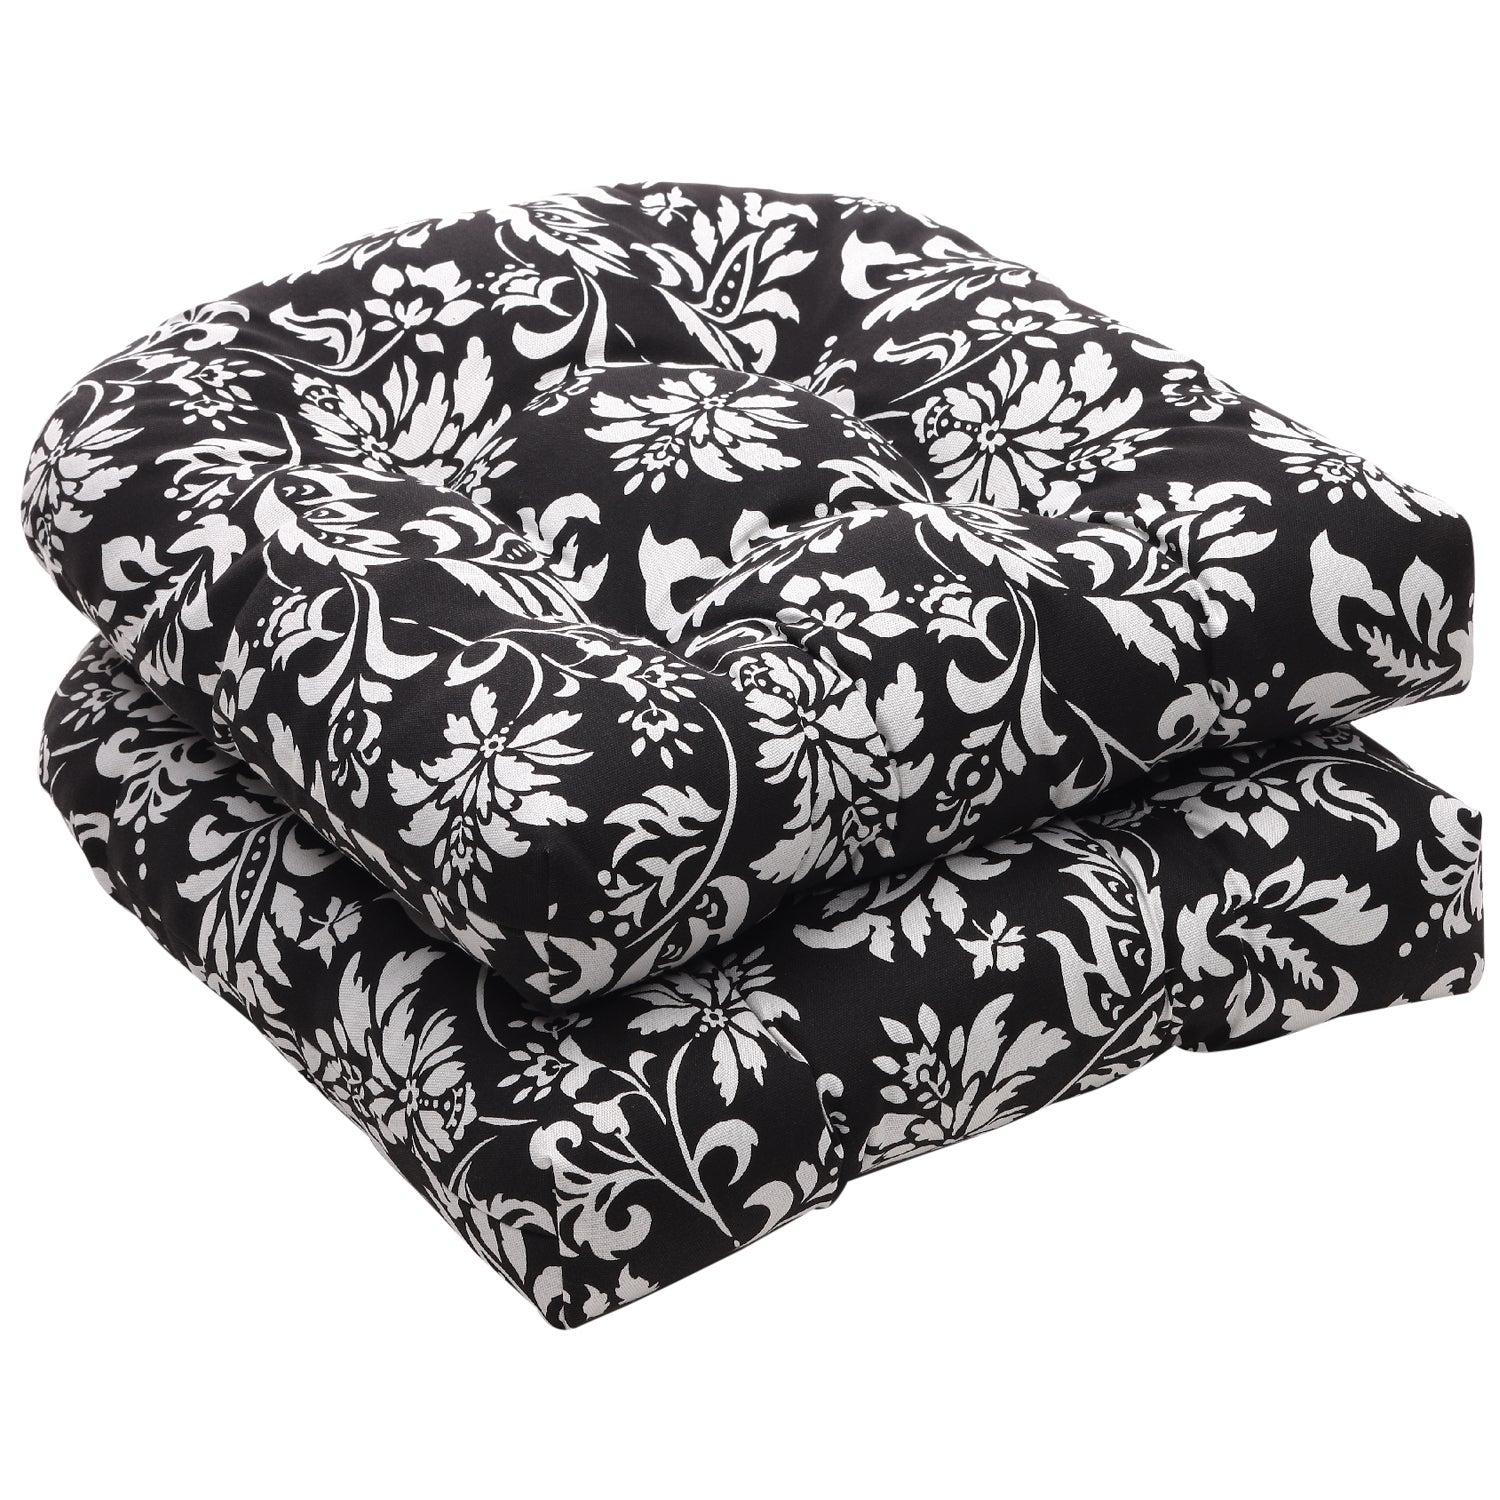 Pillow Perfect Outdoor Black/ White Floral Wicker Seat Cushions (Set of 2)